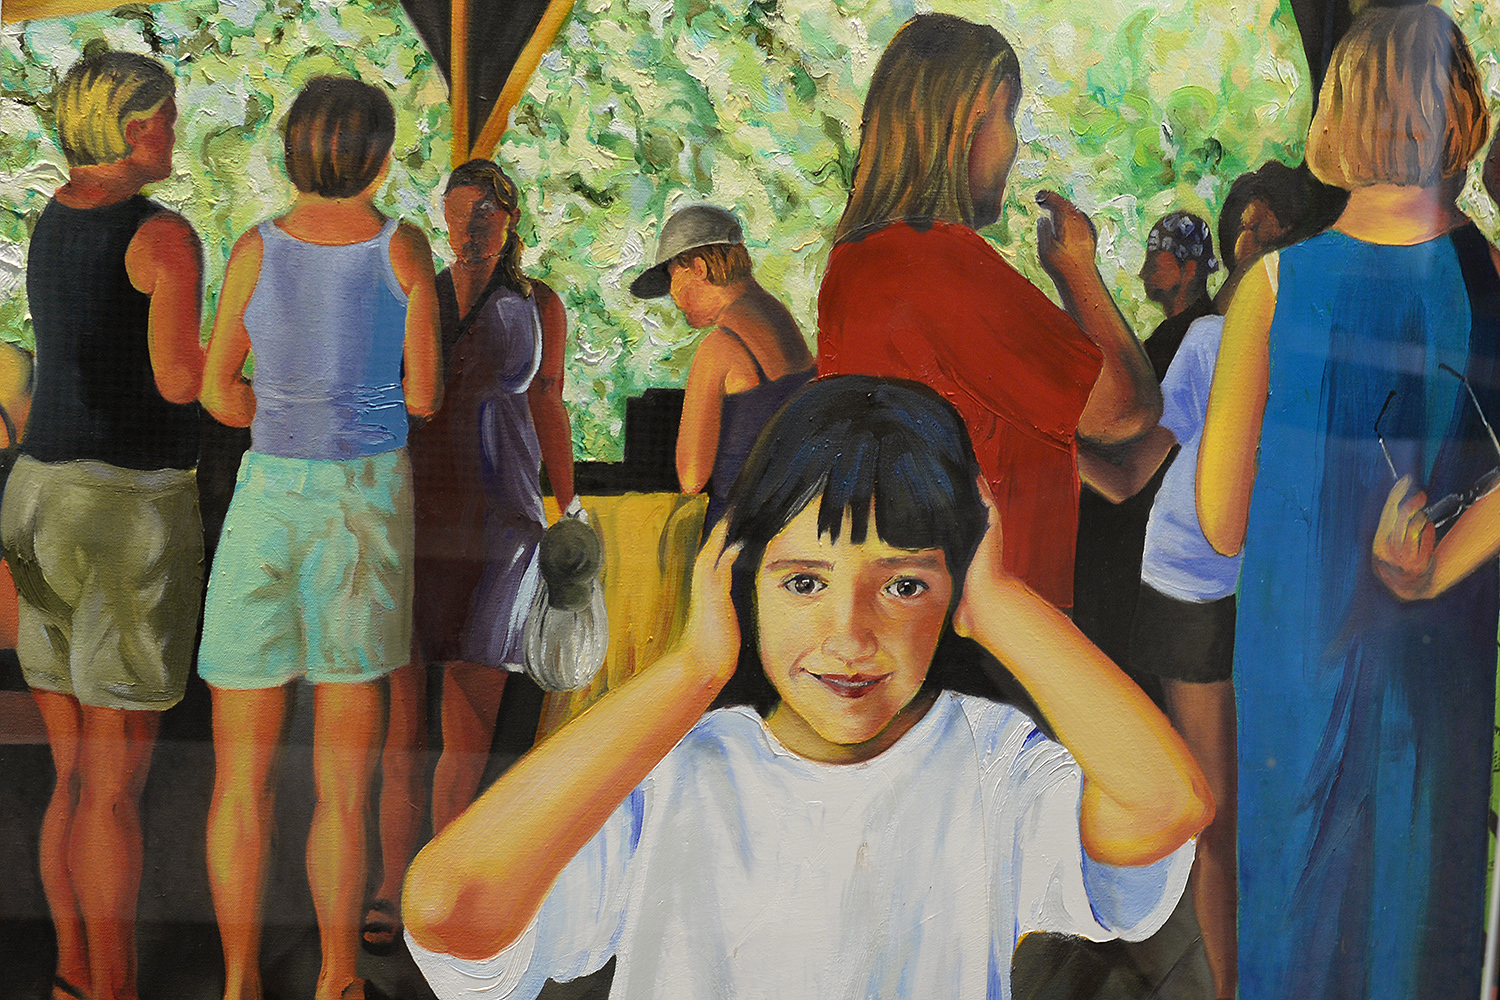 Girl in pavilion by Ariel Ciccone '16.